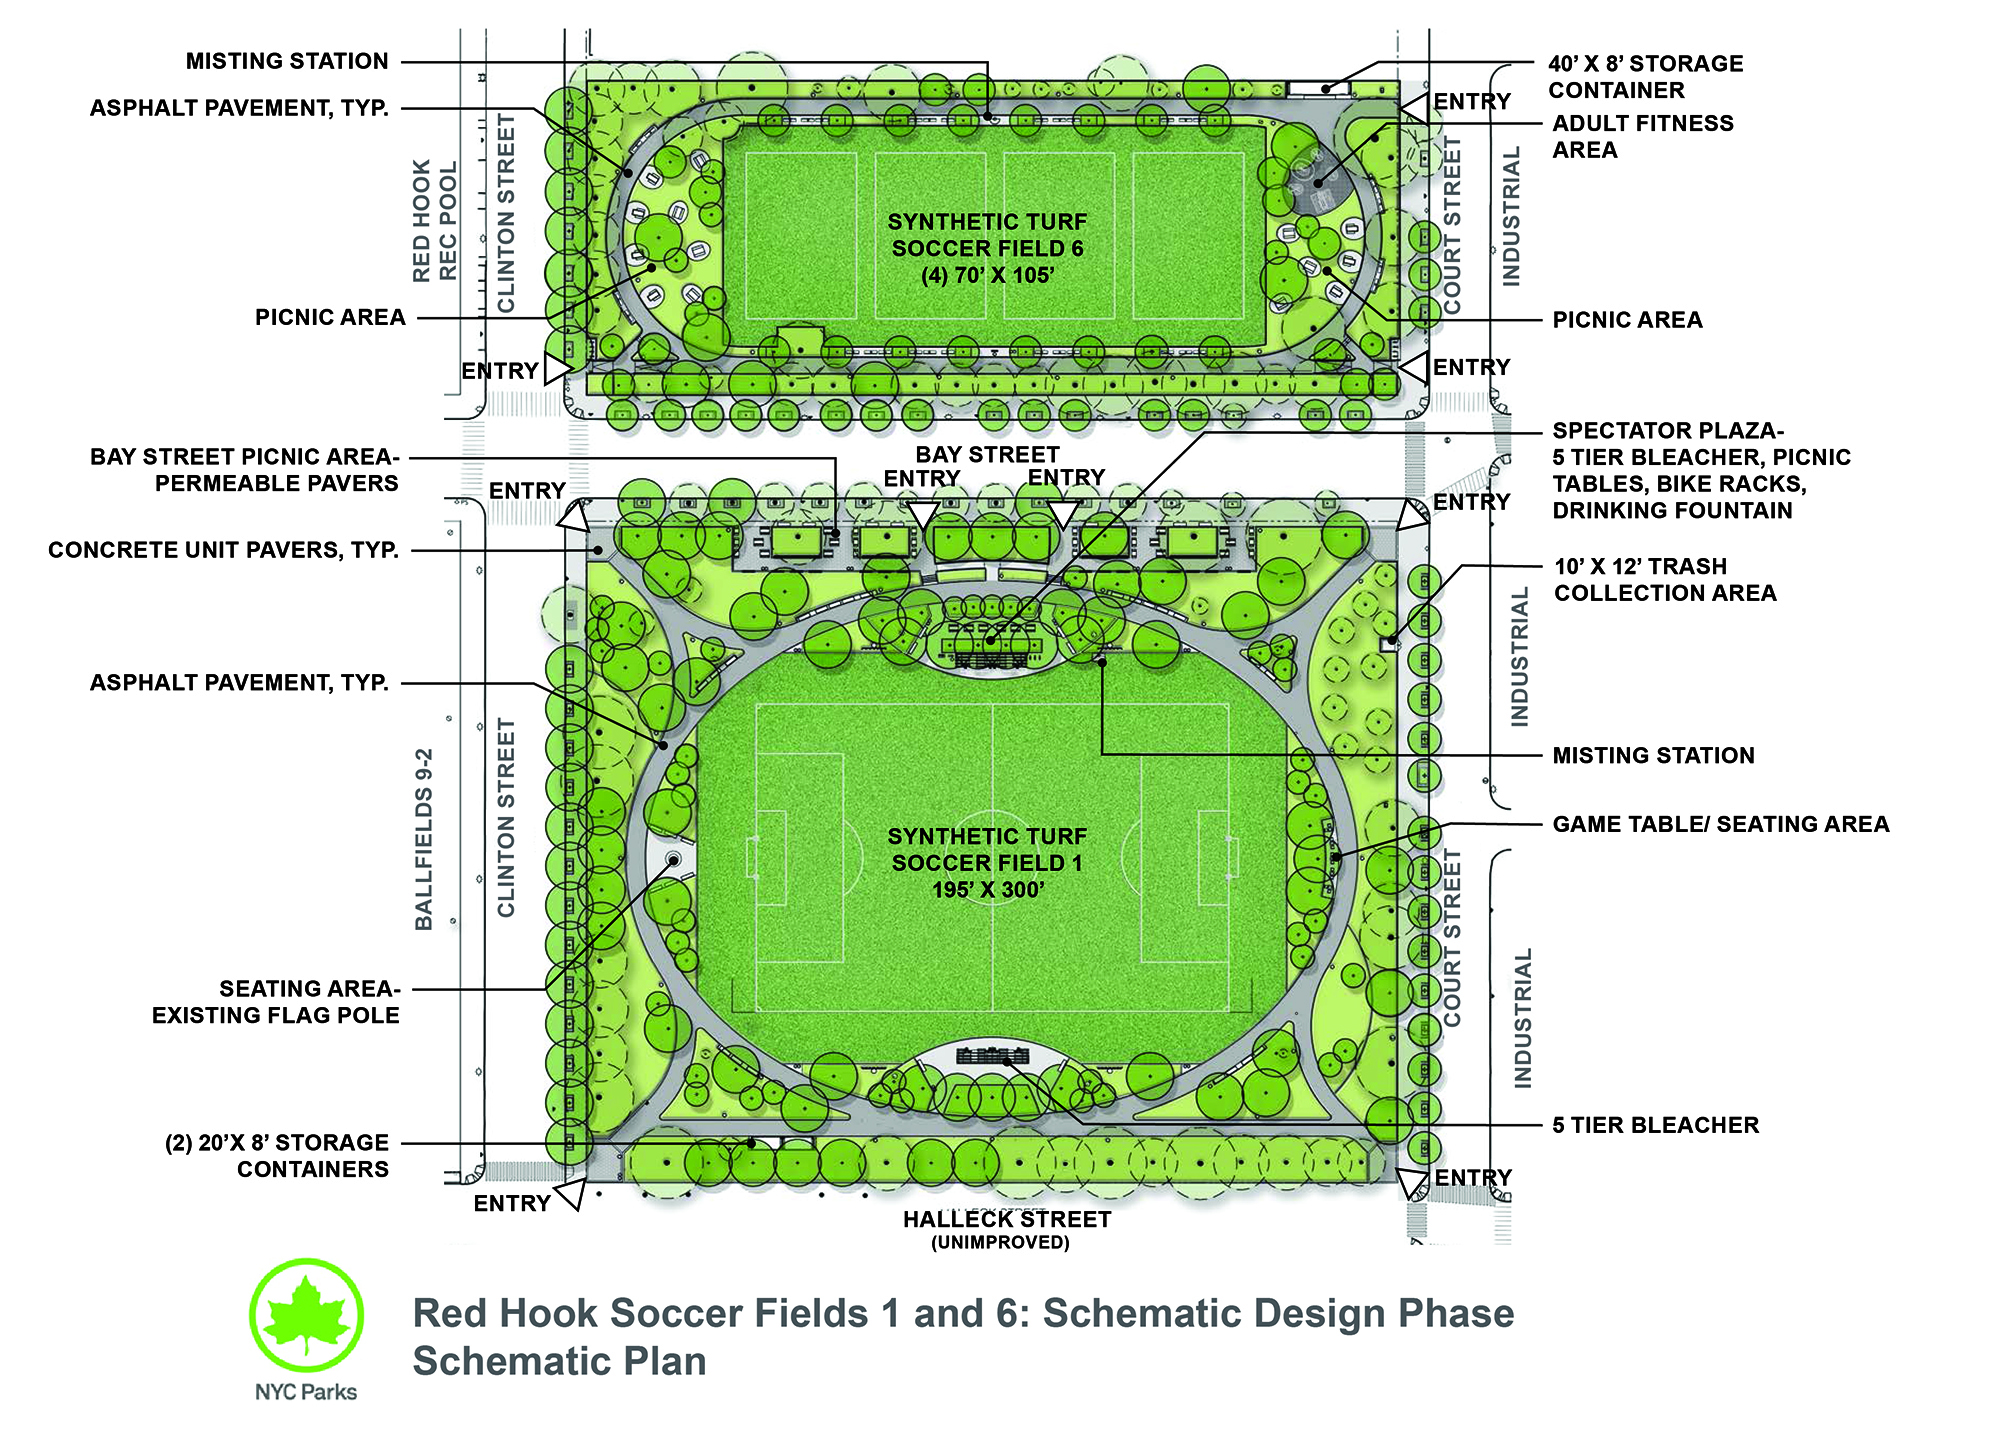 Design of Red Hook Recreation Area Soccer Fields 1 and 6 Reconstruction